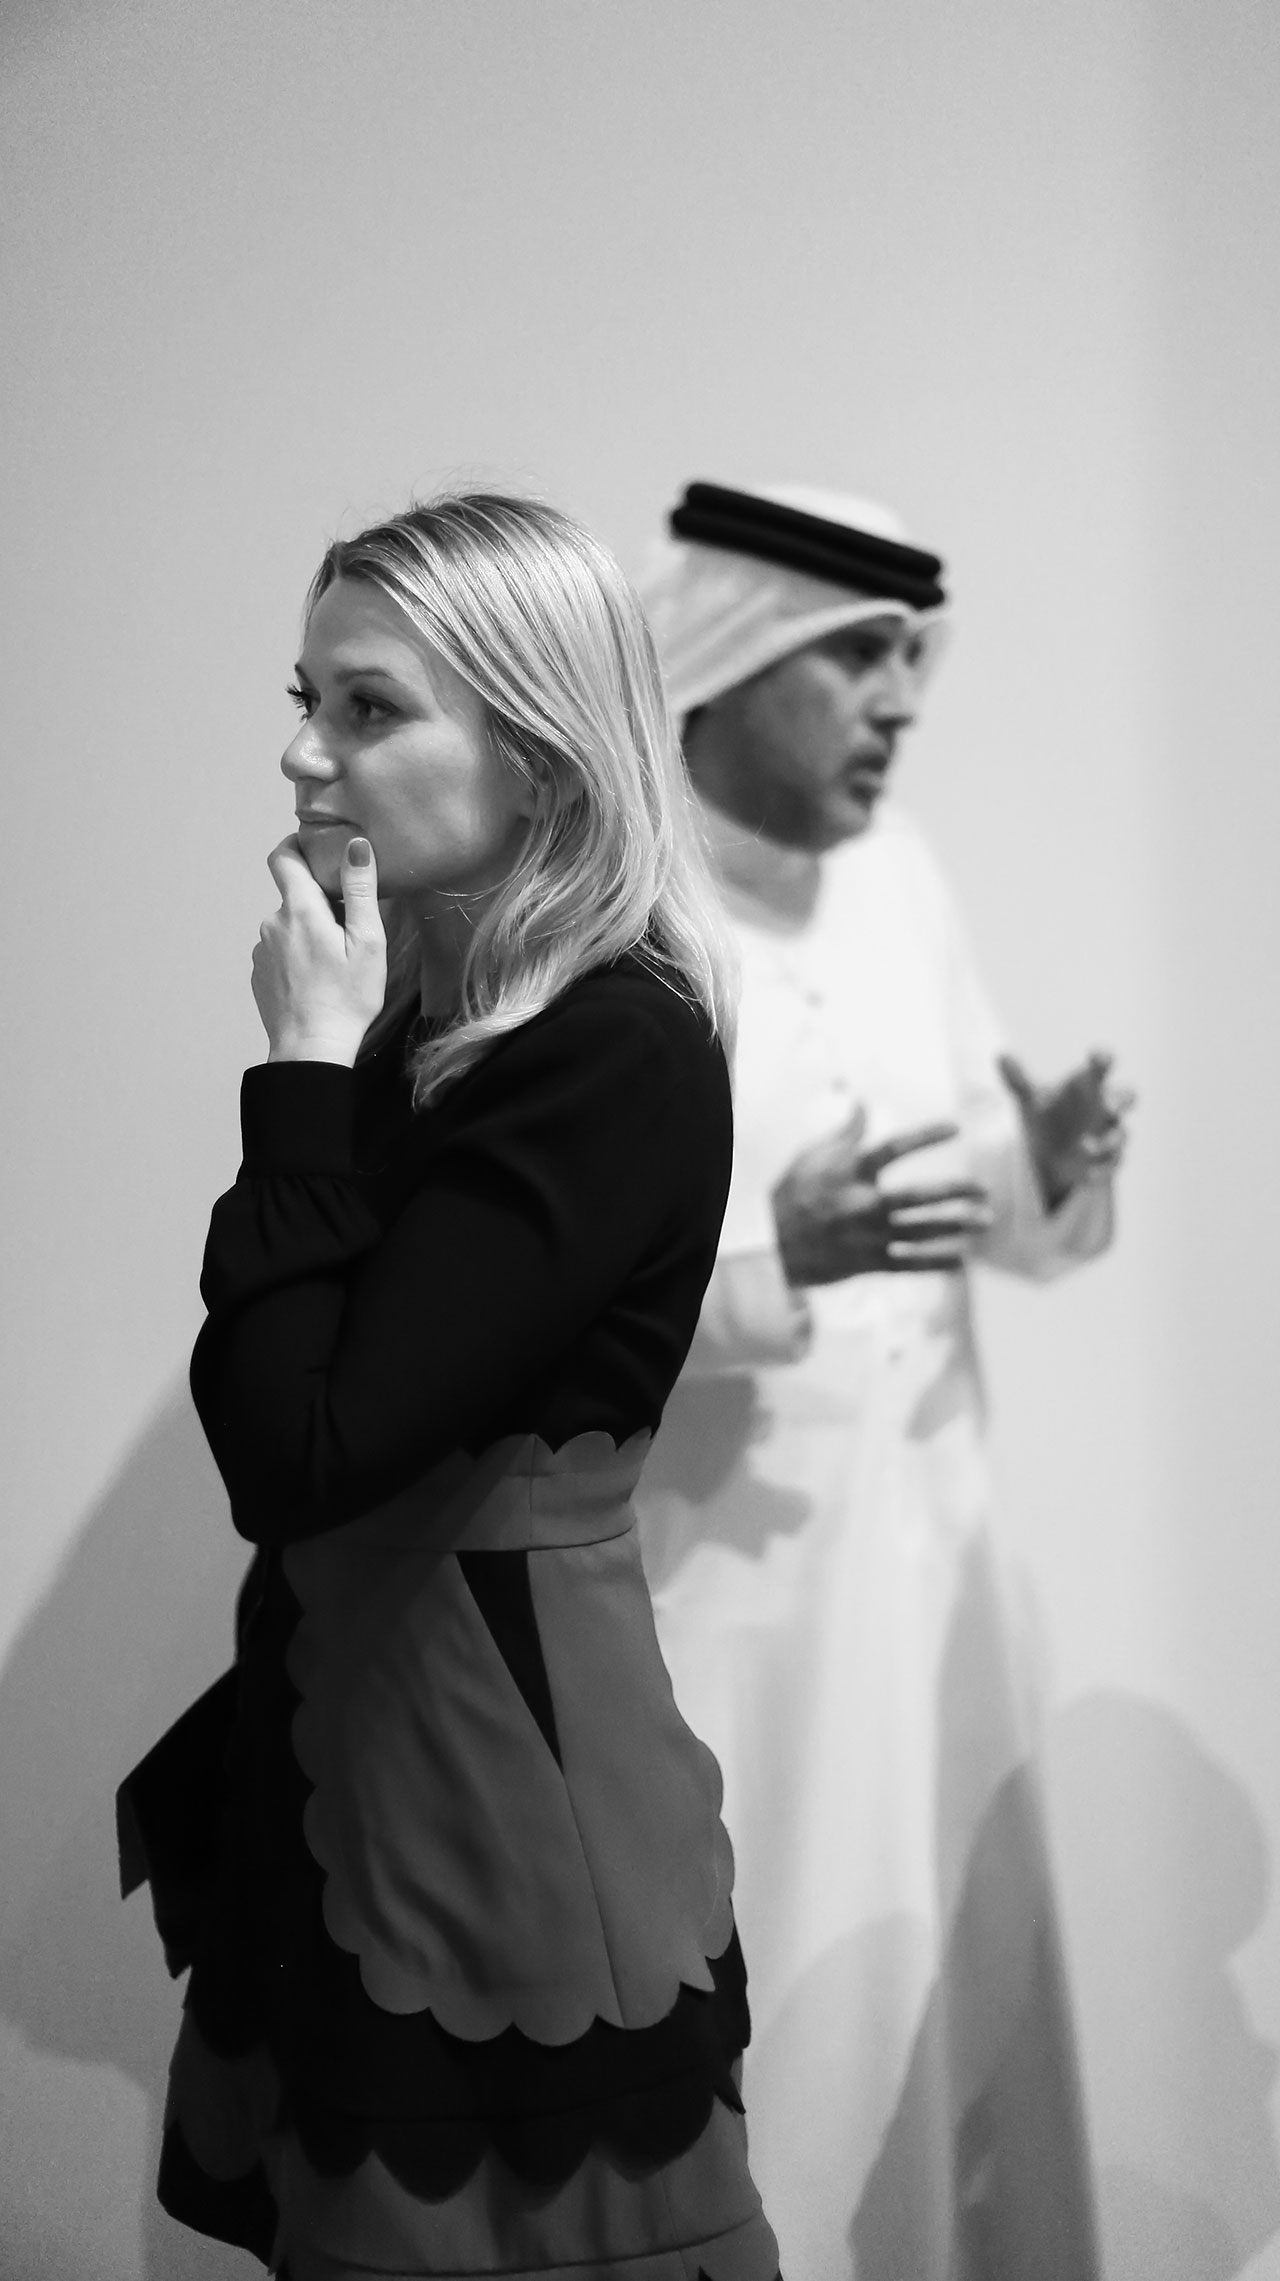 Alserkal Avenue Director Vilma Jurkute and Founder Abdelmonem Alserkal. Photo courtesy Alserkal Avenue.